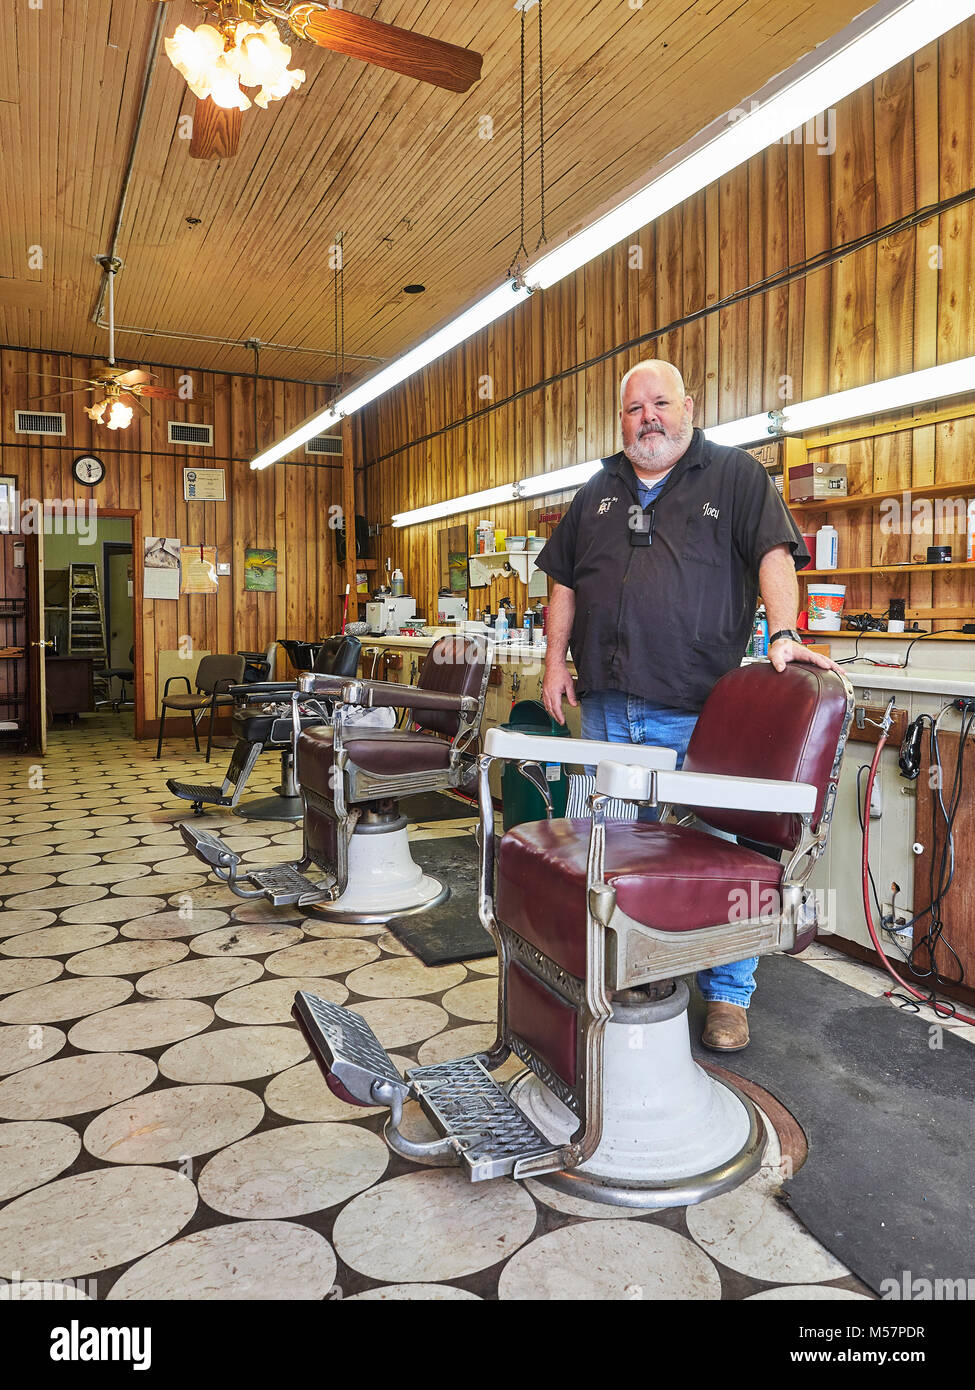 Small town male barber standing next to an old antique barber chair in a vintage barber shop, in Prattville Alabama, - Stock Image